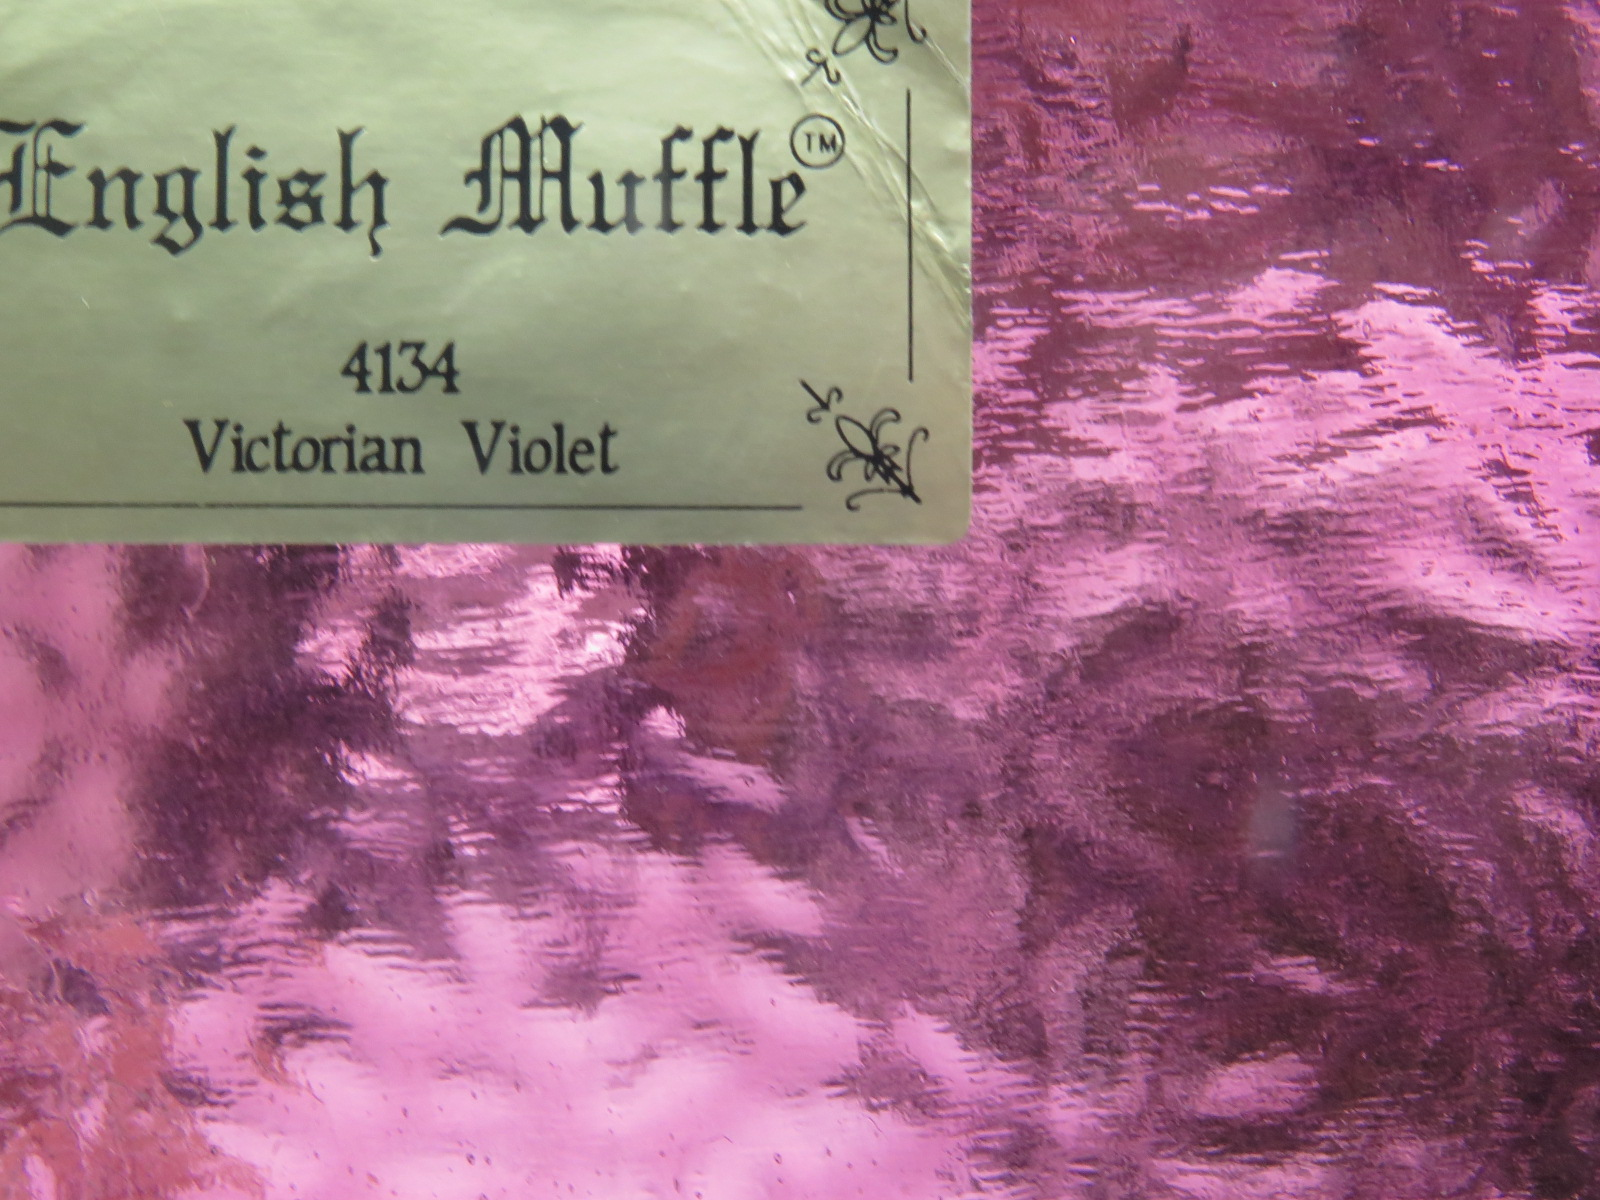 English Muffle/Wissmach Victorian Violet